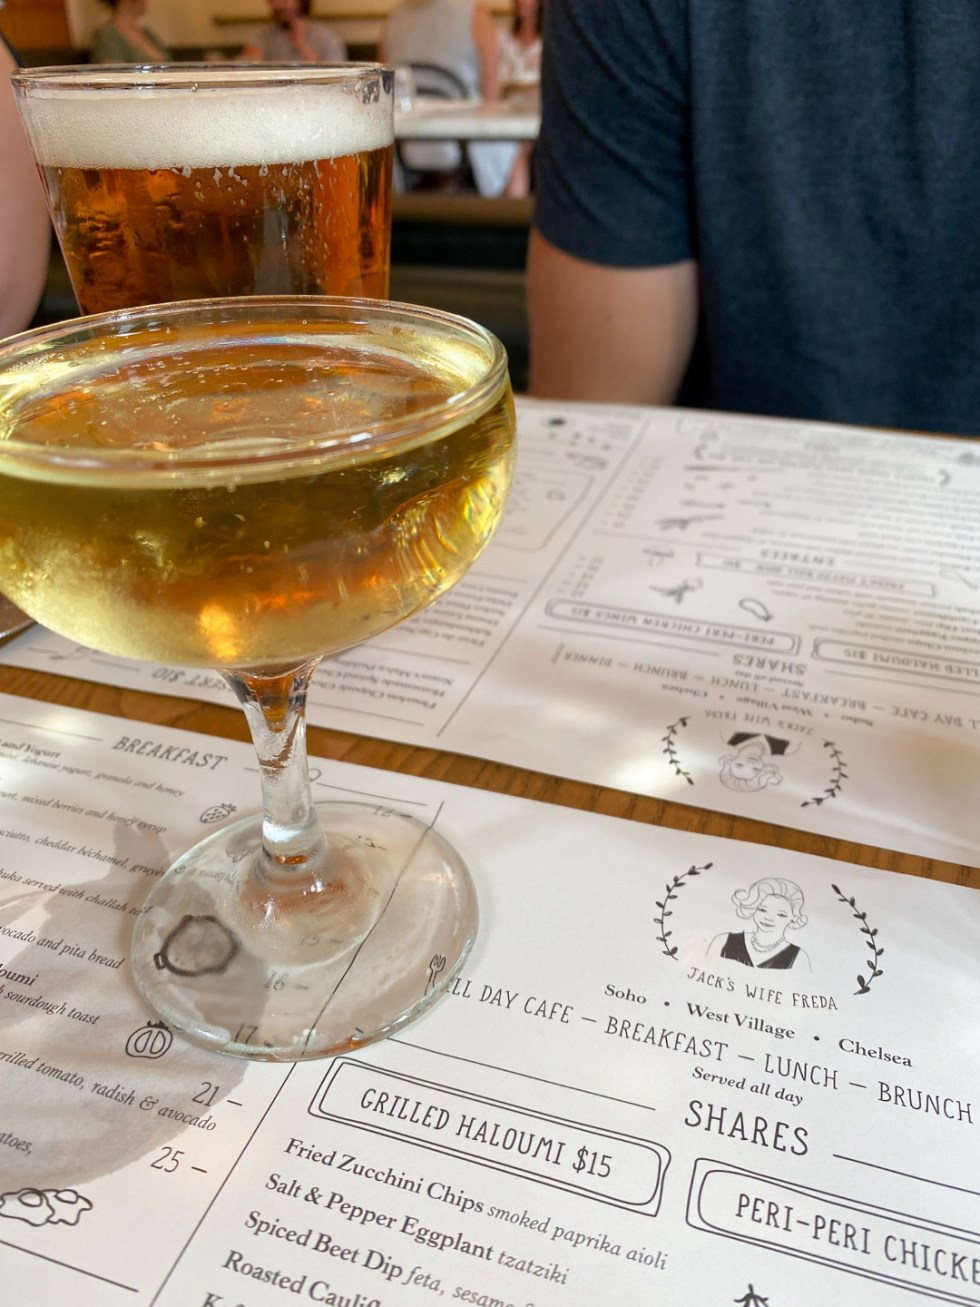 NYC Summer Weekend: Things to Do in NYC in the Summer - I'm Fixin' To - @imfixintoblog   NYC Summer Weekend by popular NC travel blog, I'm Fixin' To: image of an alcoholic drink on a Jack's Wife Freda menu.